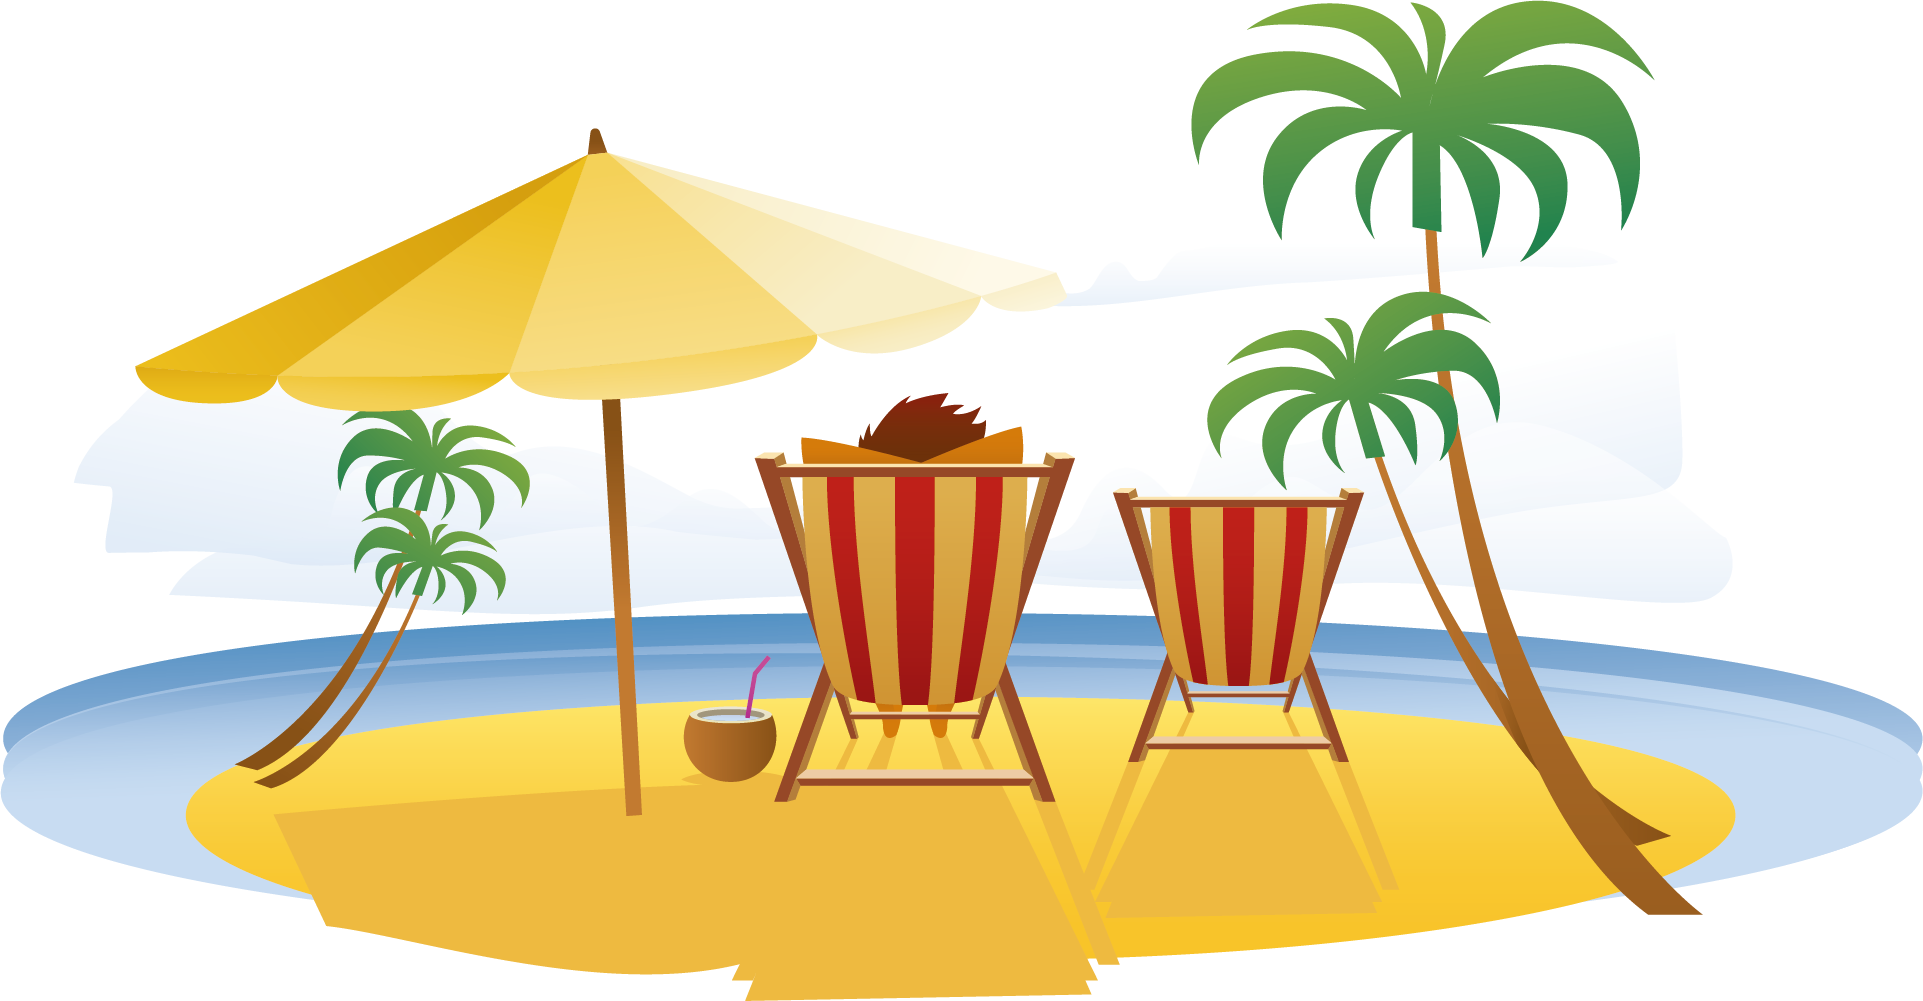 Vacation bingo clipart images image library Download Summer Relax Travel Seaside Vacation Resort In ... image library